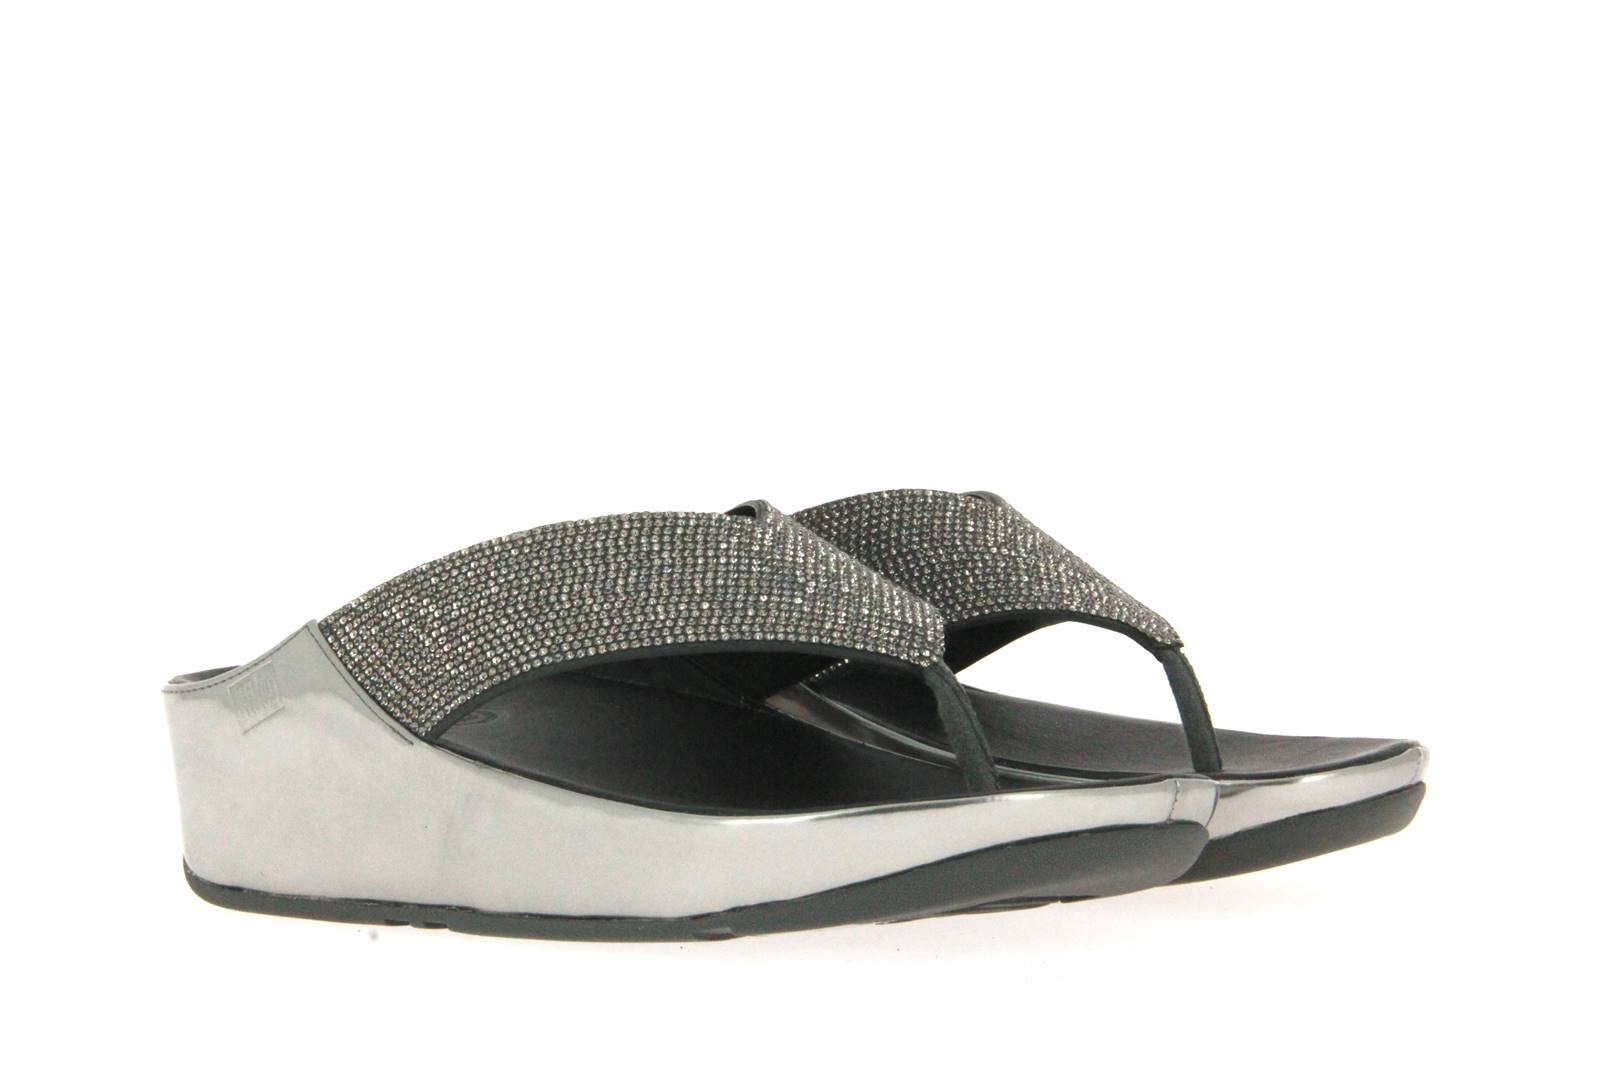 Fitflop mules PEWTER CRYSTAL